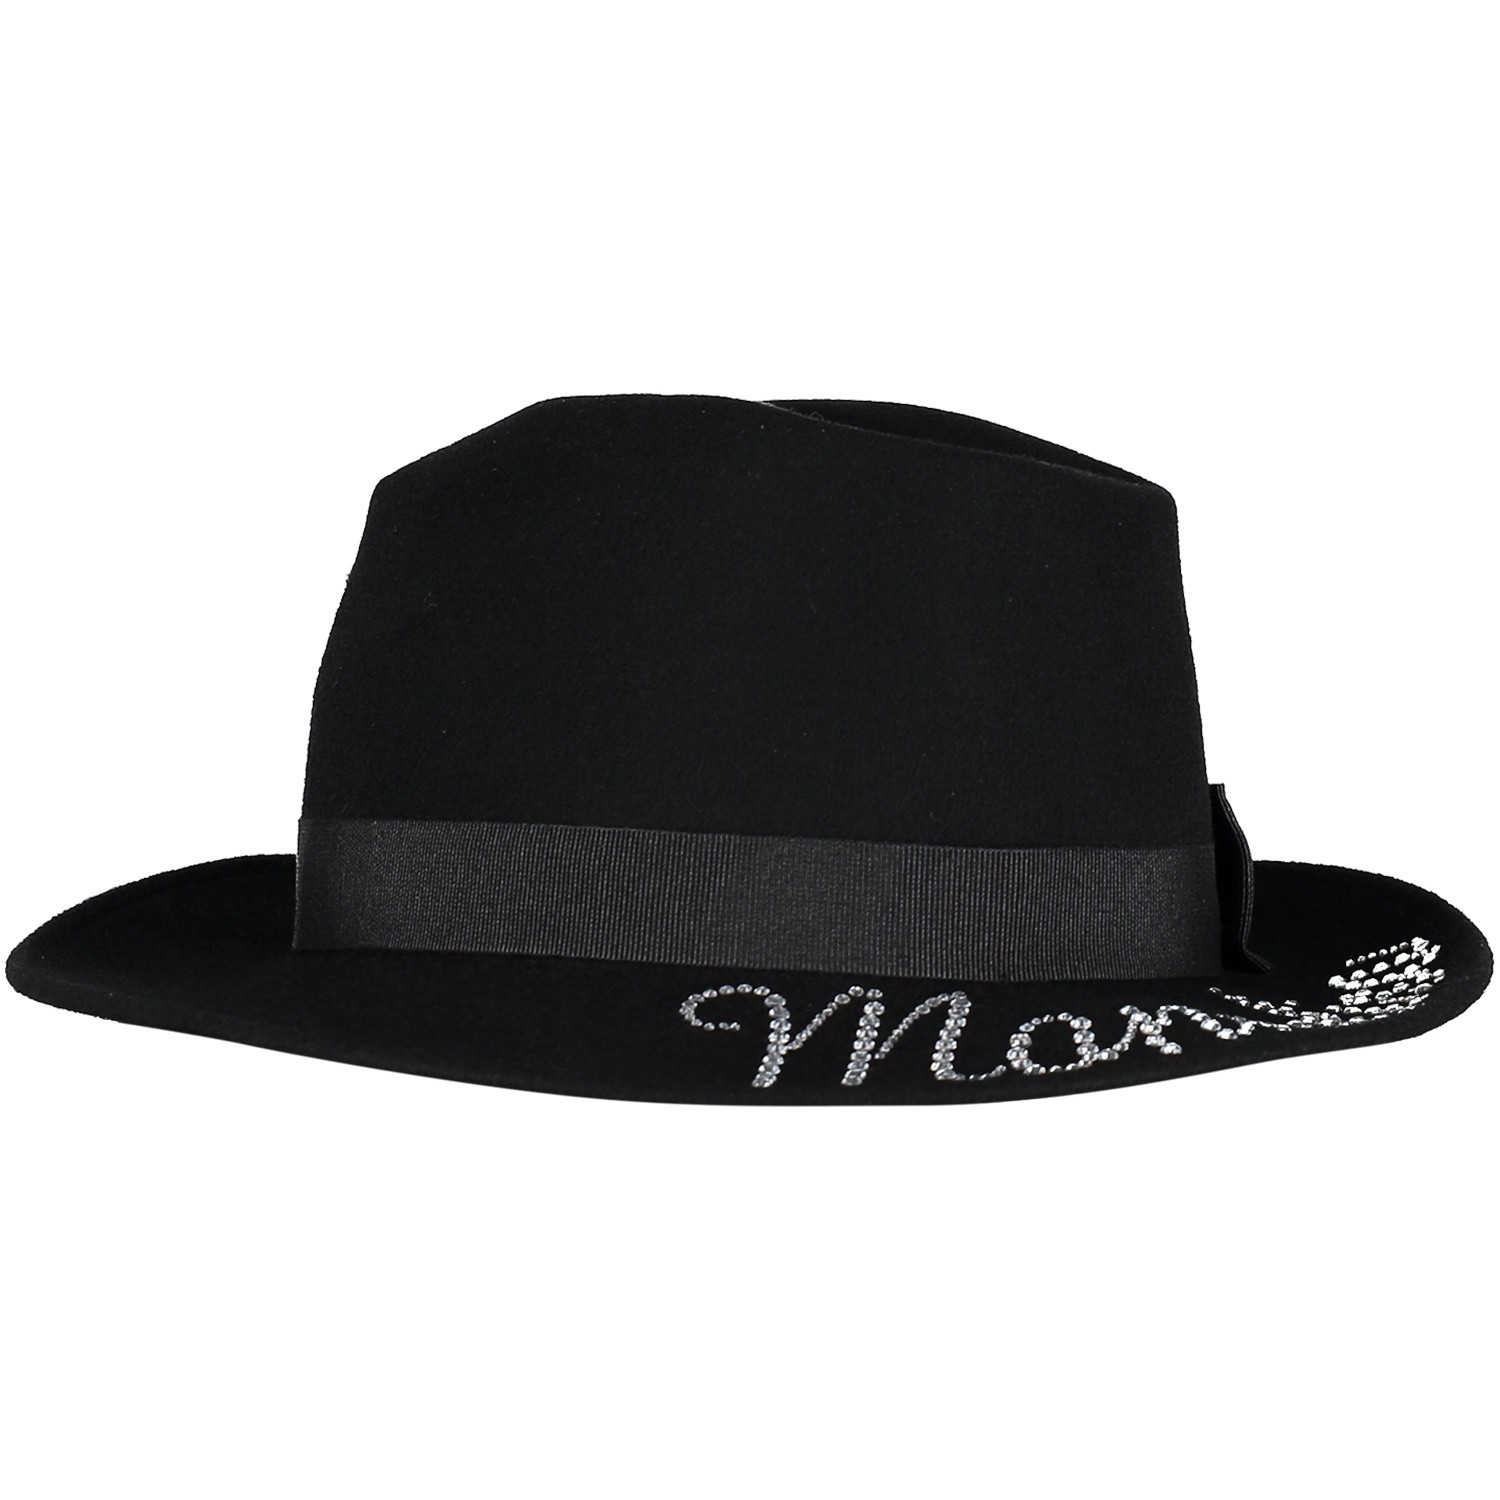 Picture of MonnaLisa 492013 kids hat black